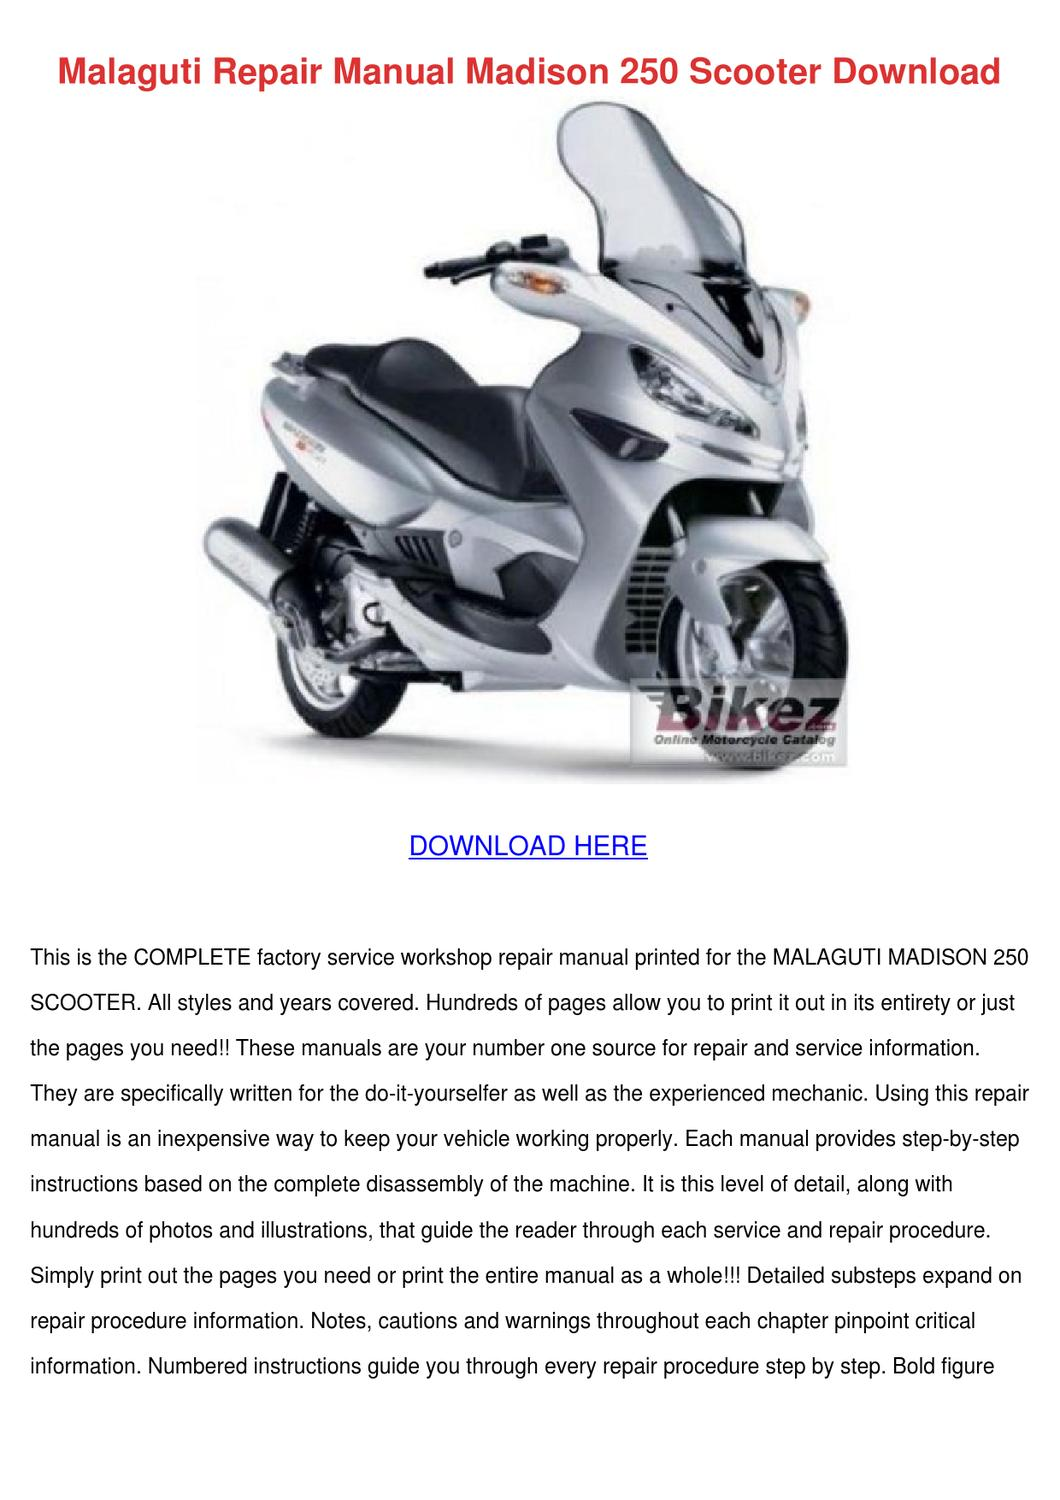 Malaguti Repair Manual Madison 250 Scooter Do by DominickChristy ...